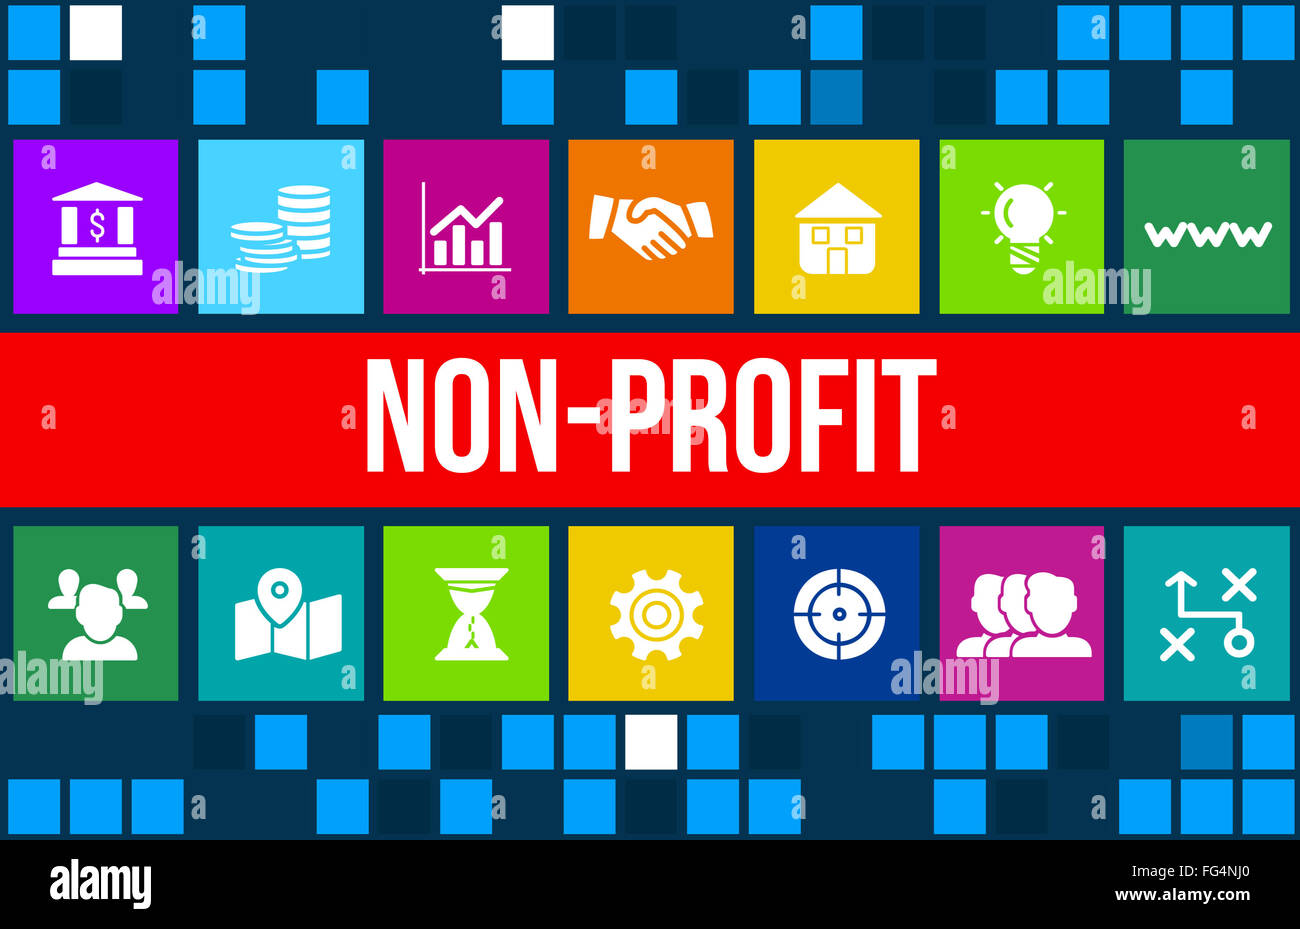 Nonprofit concept image with business icons and copyspace. - Stock Image